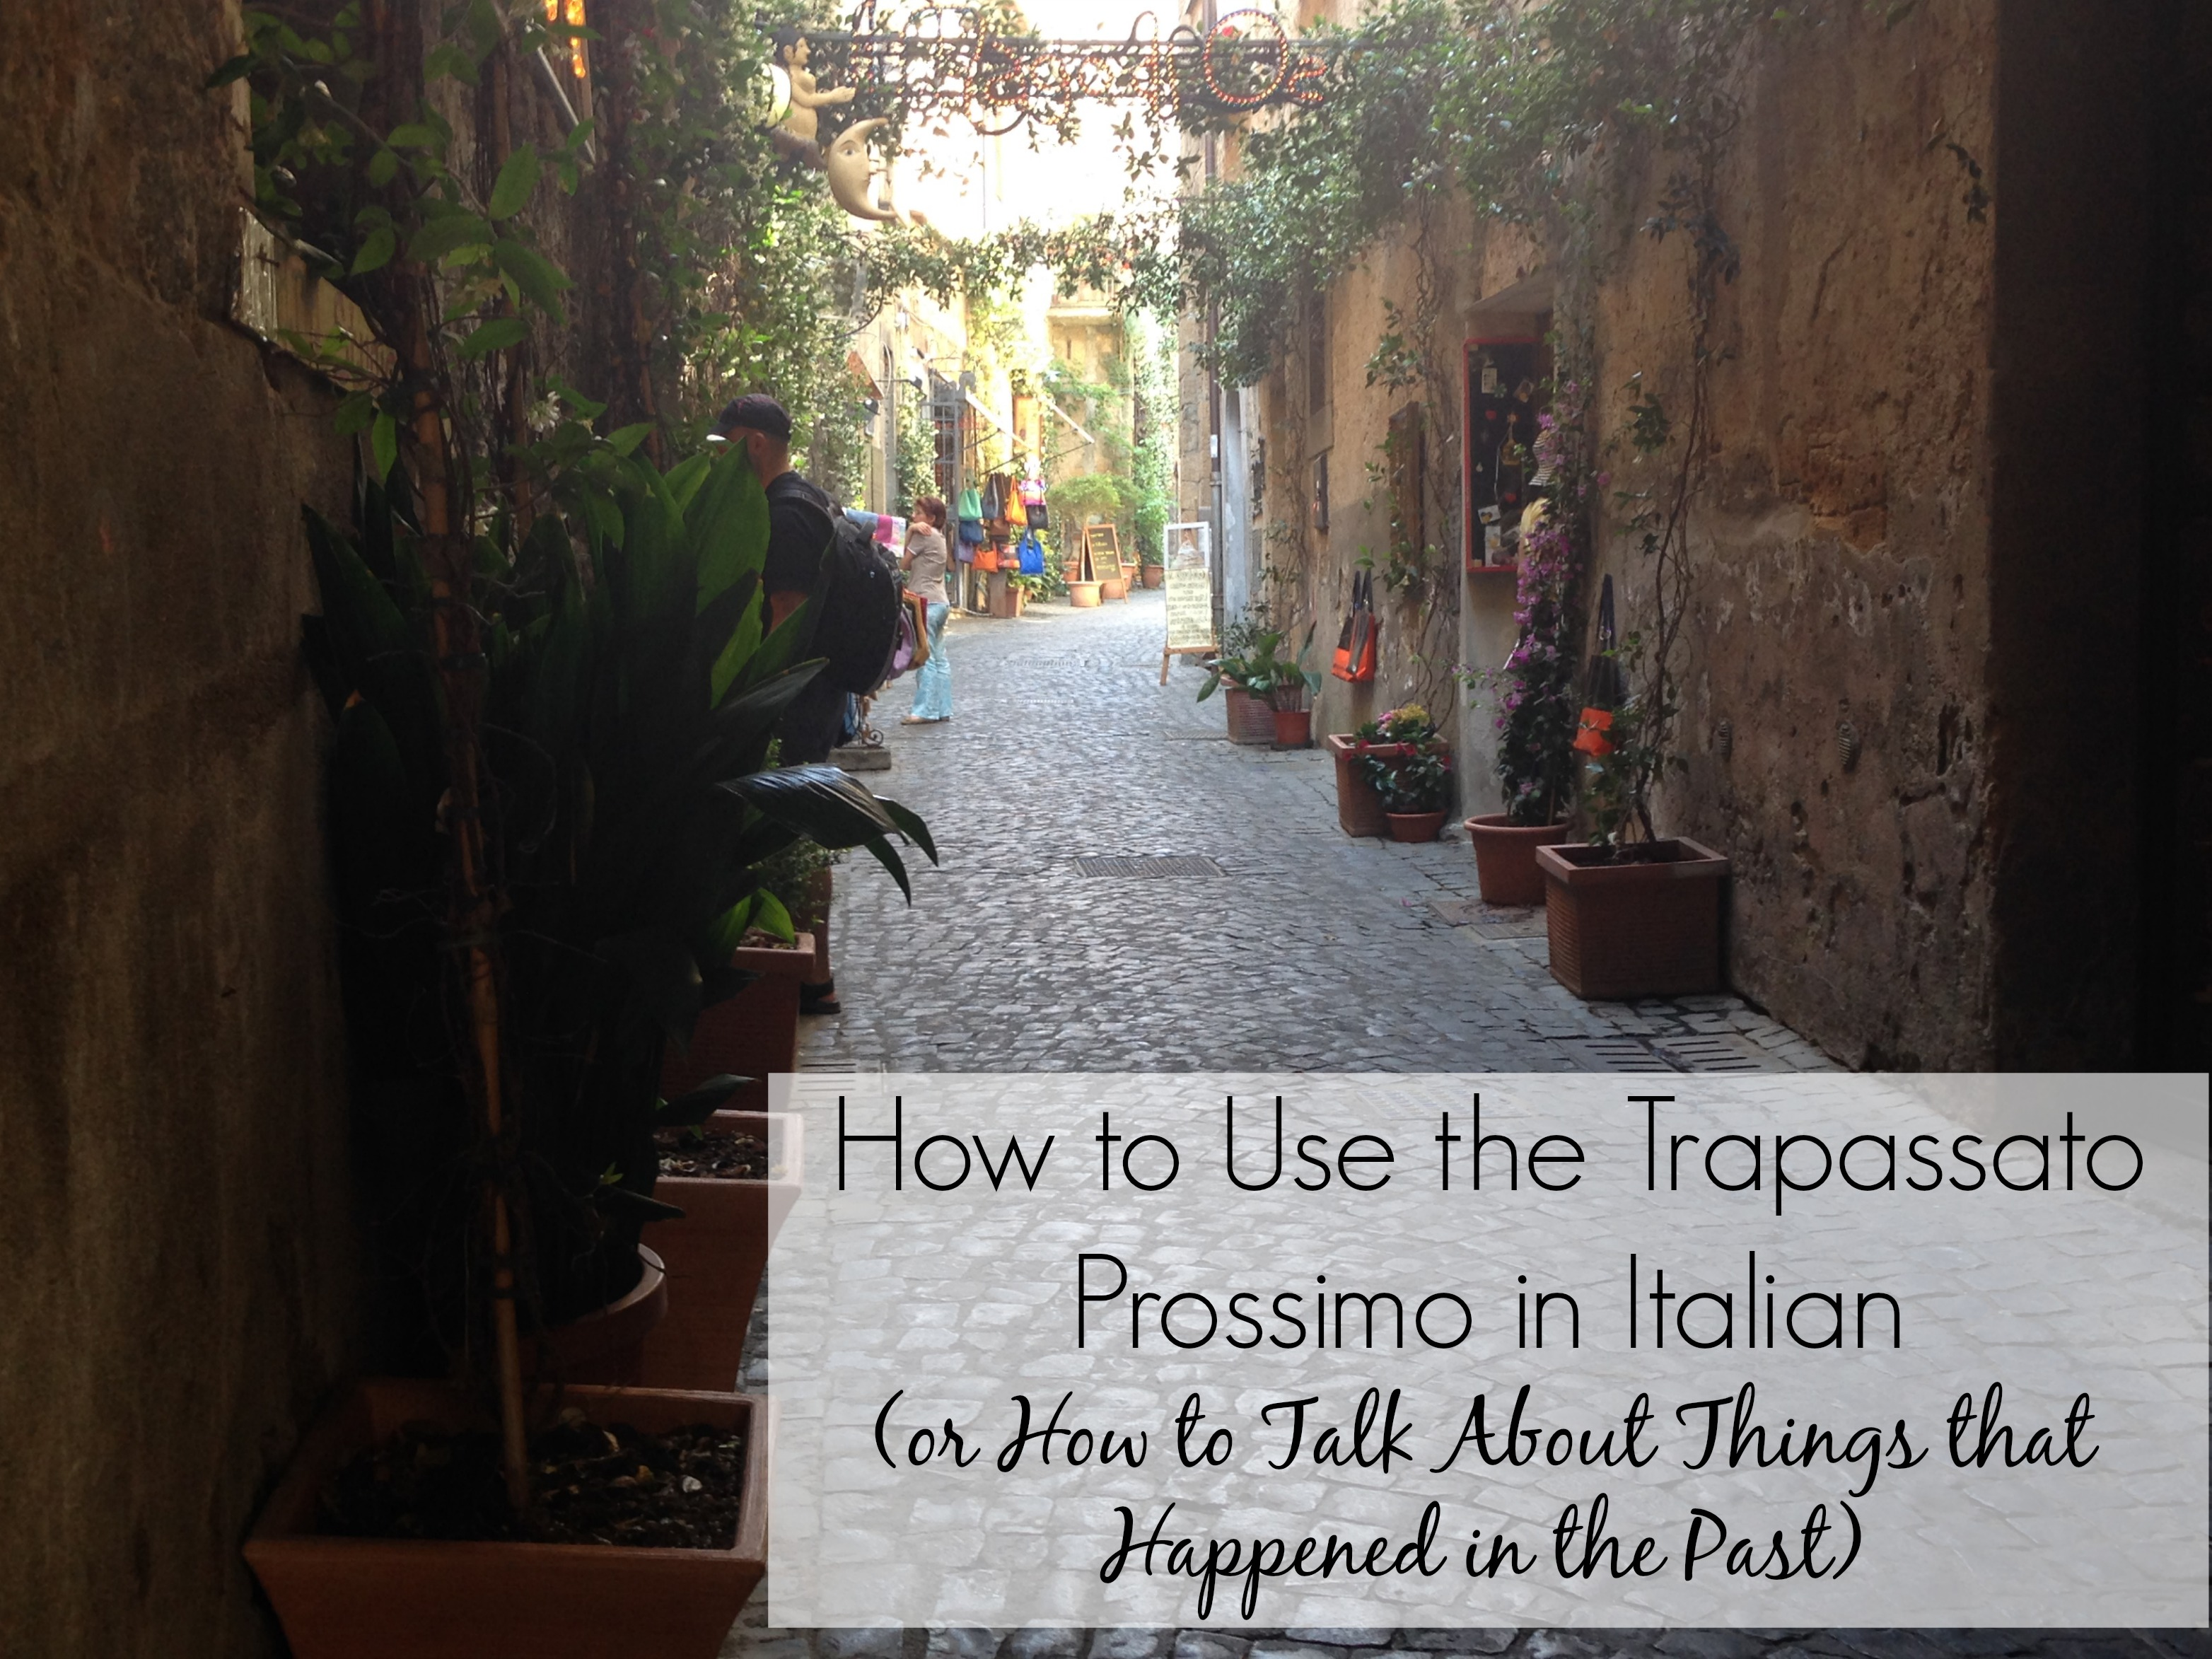 How to Use the Trapassato Prossimo in Italian (or How to Talk About Things that Happened in the Past)